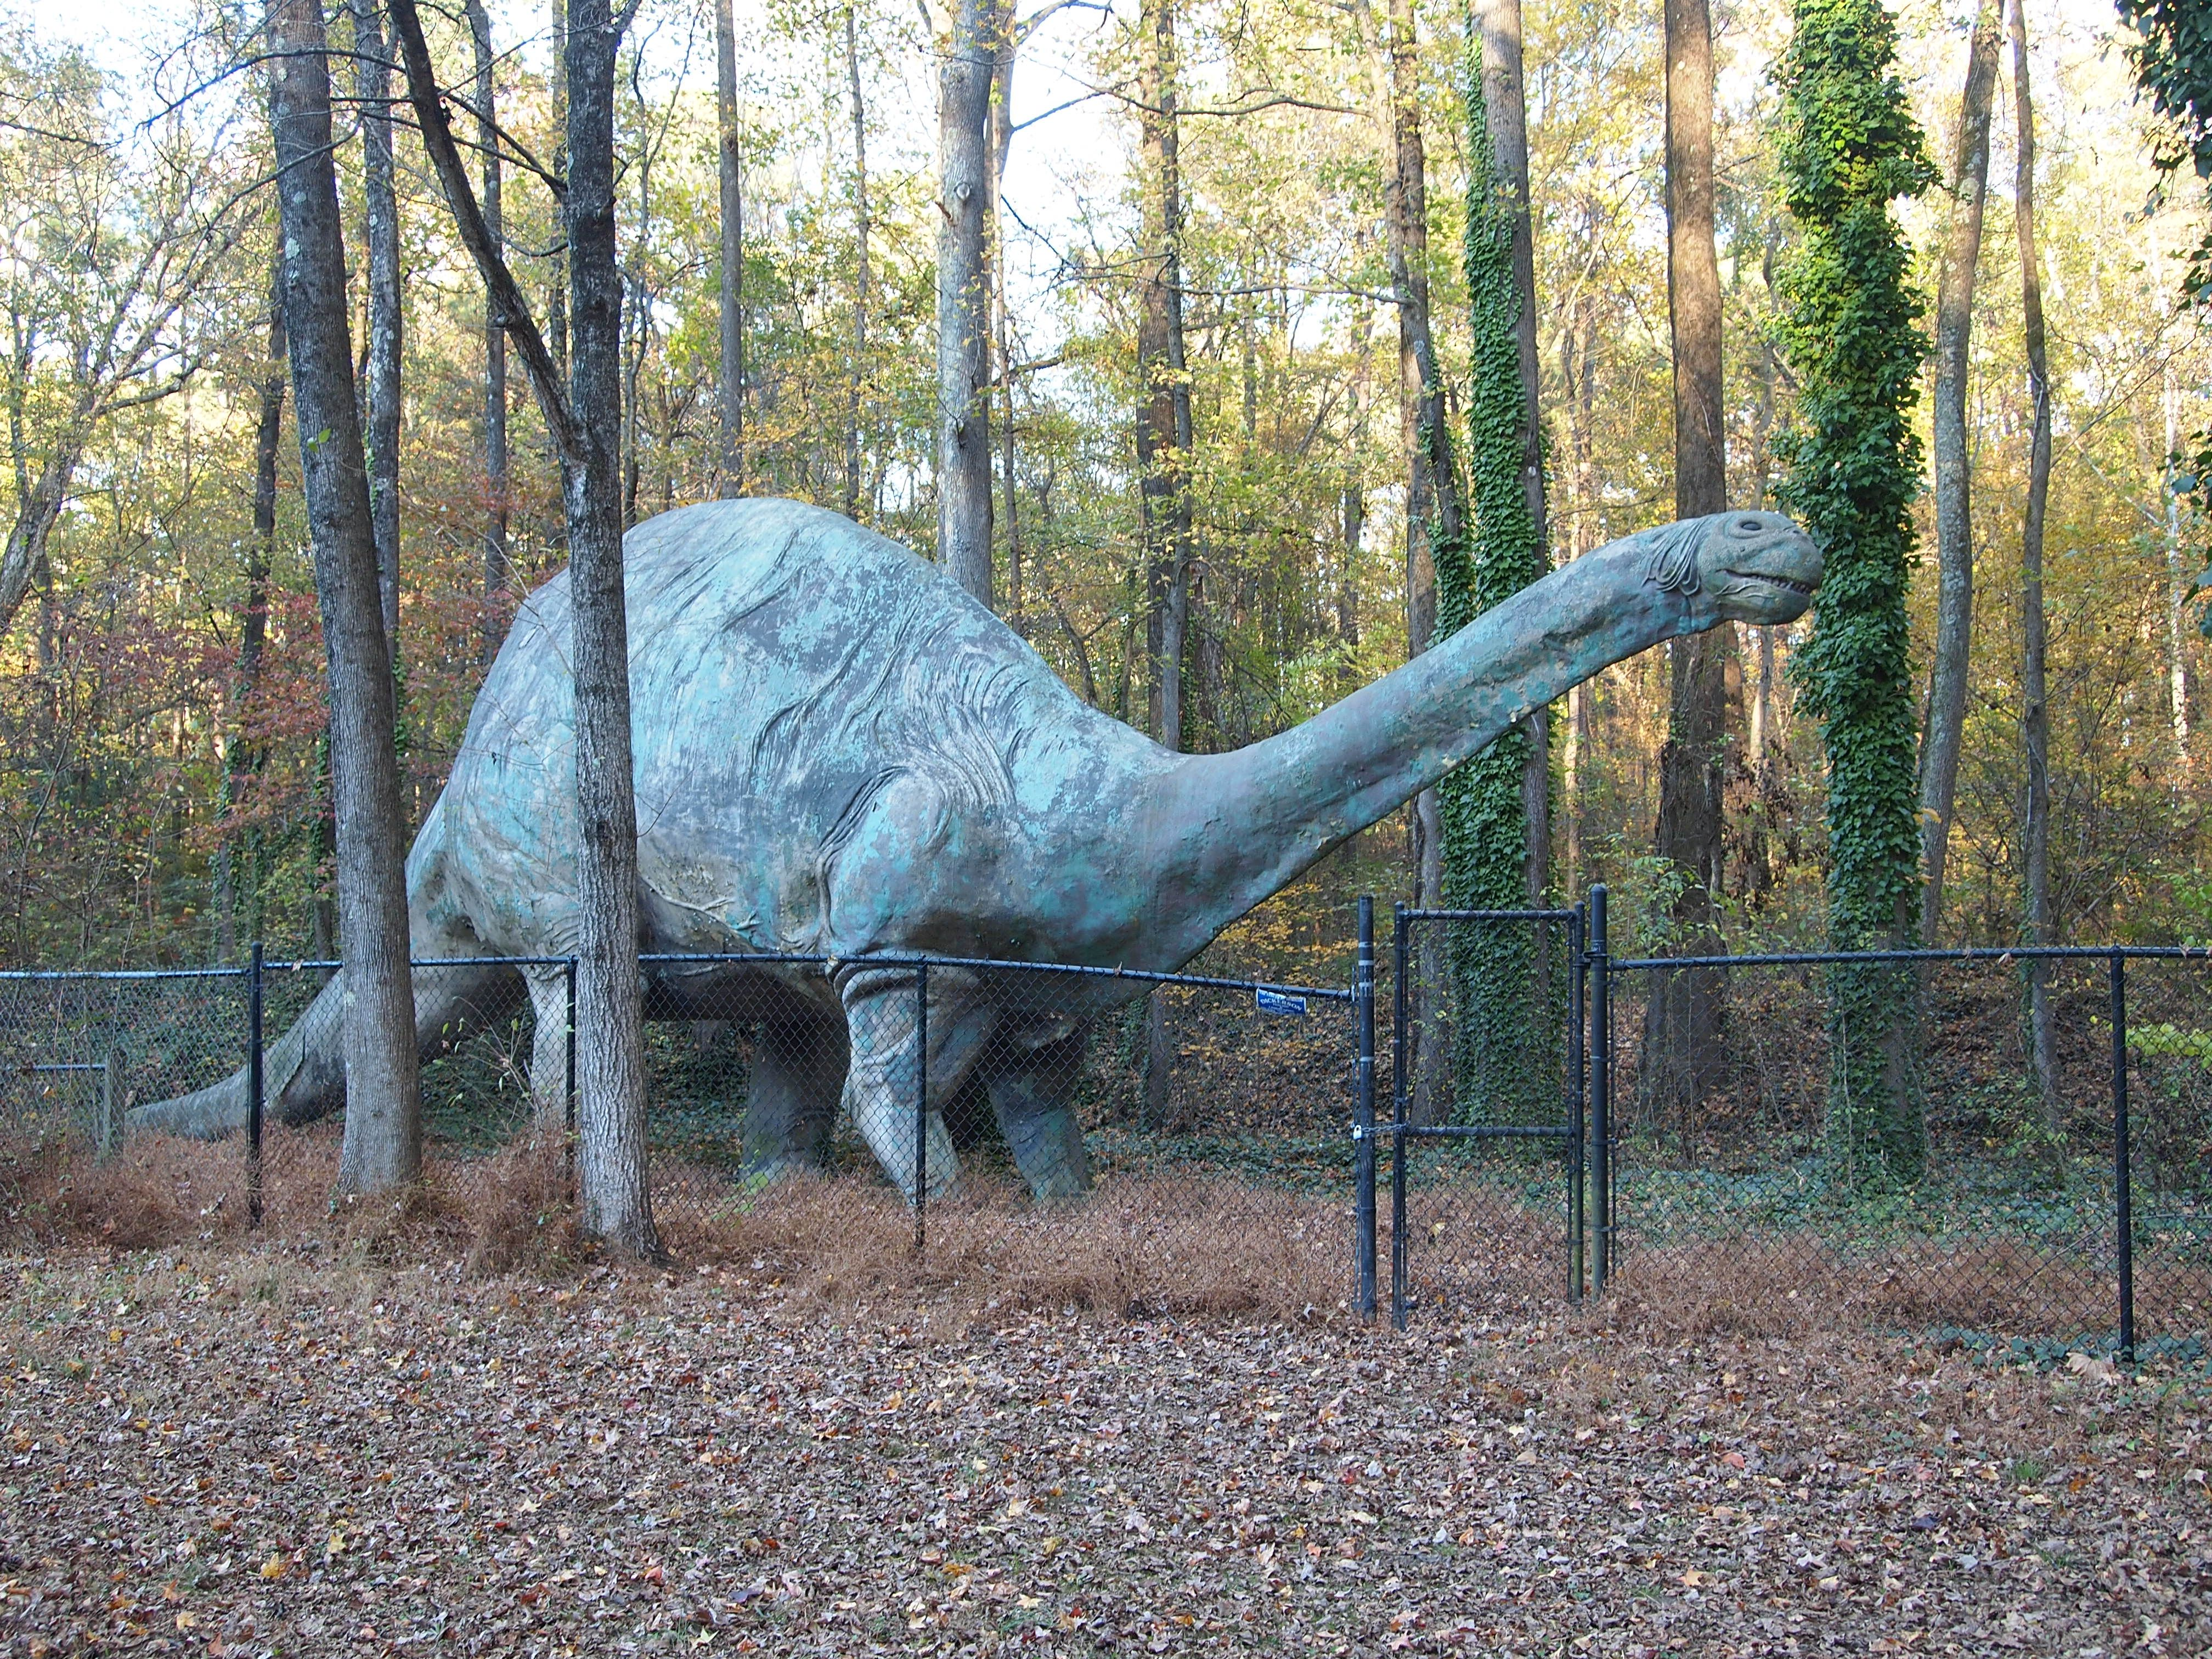 The Brontosaurus statue from the old Museum of Life & Science dinosaur trail. Visible from a greenway. It's out of date, and ugly (in my opinion), but iconic.  Photo by Naomi Parkhurst.